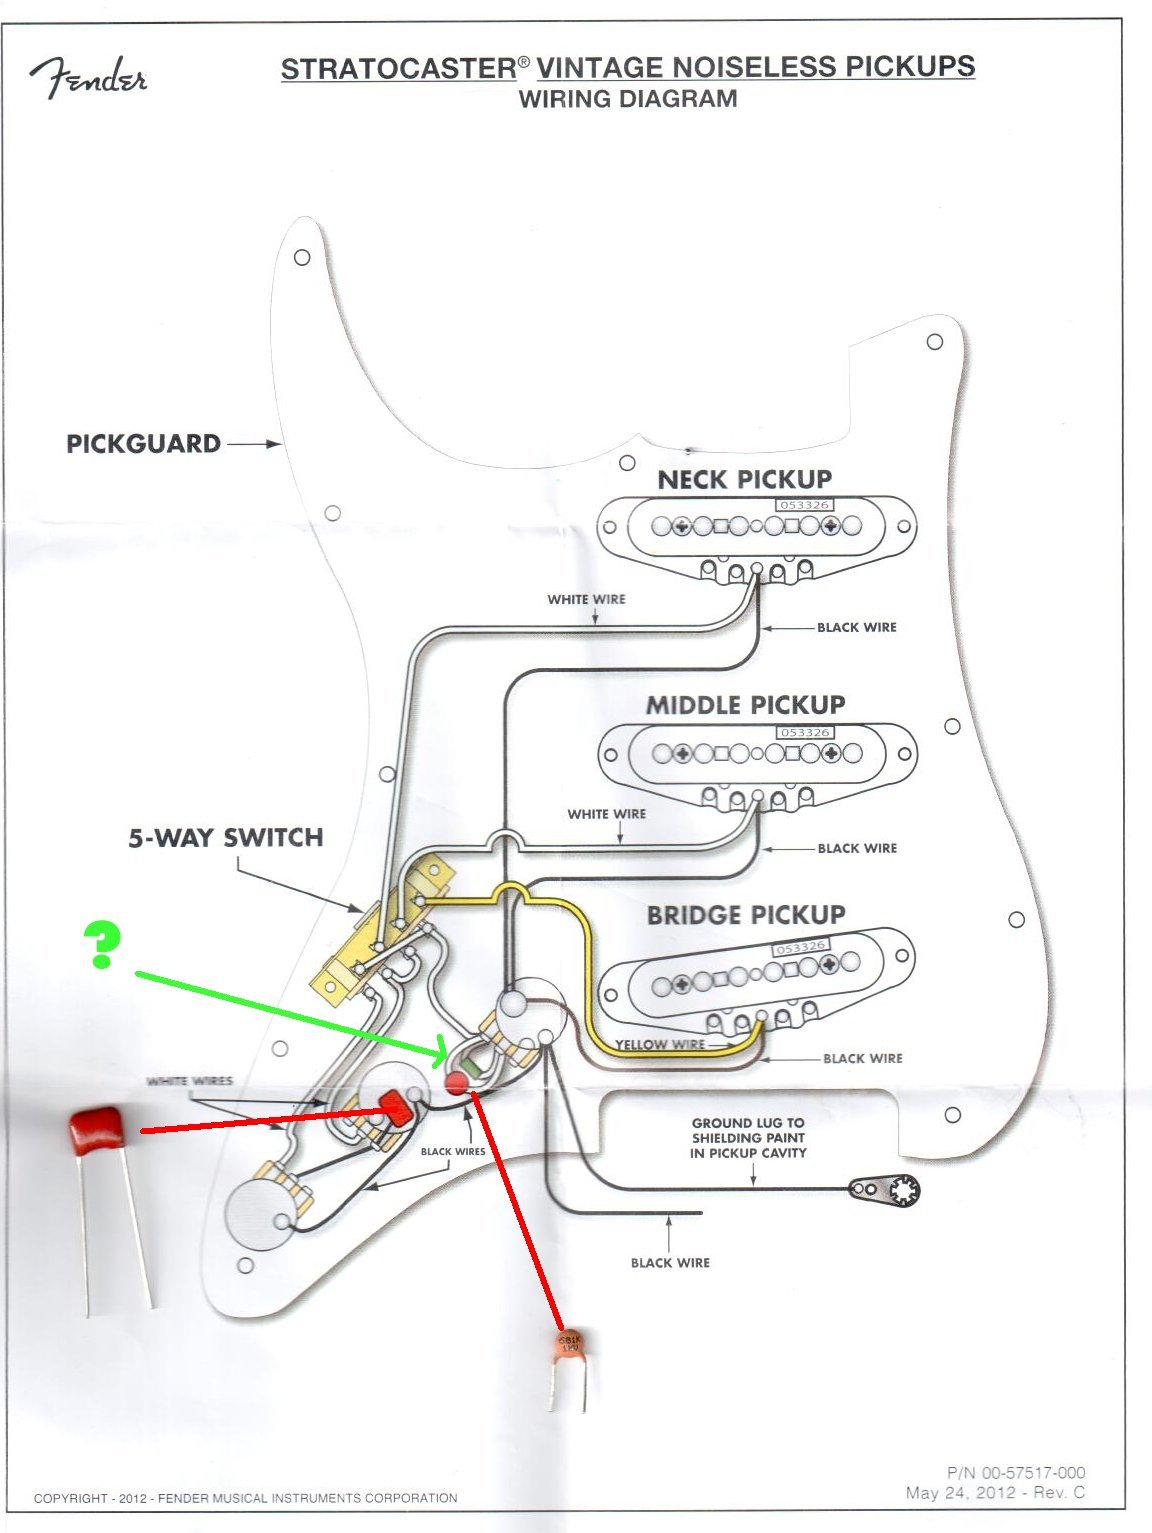 fender vintage noiseless pickups wiring diagram collection wiring diagram  full version hd quality wiring diagram - marz-diagram.changezvotrevie.fr  diagram database - changezvotrevie.fr